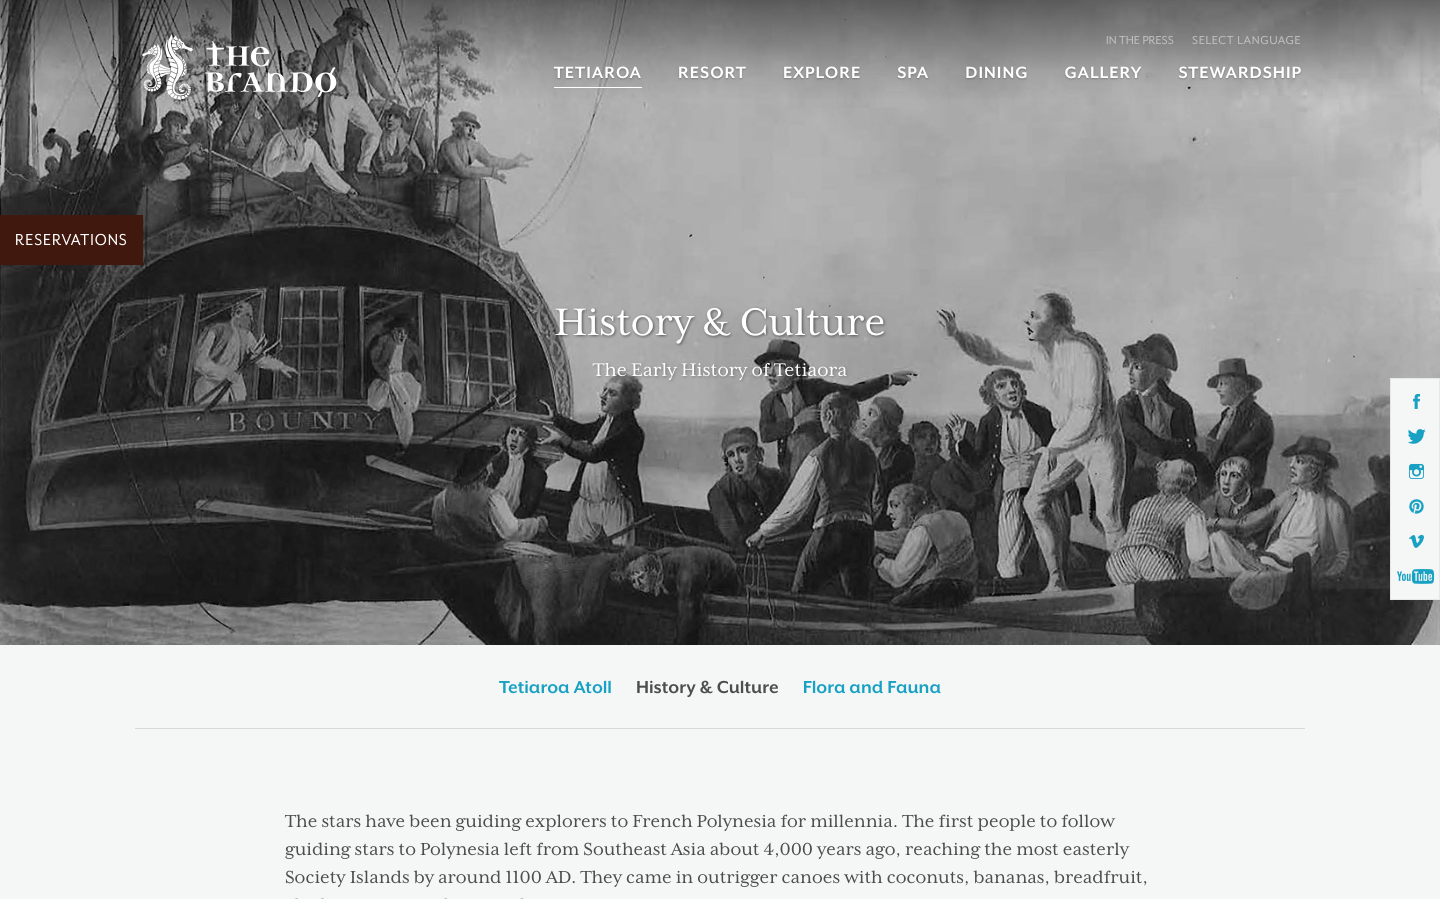 The Brando's website's History & Culture page